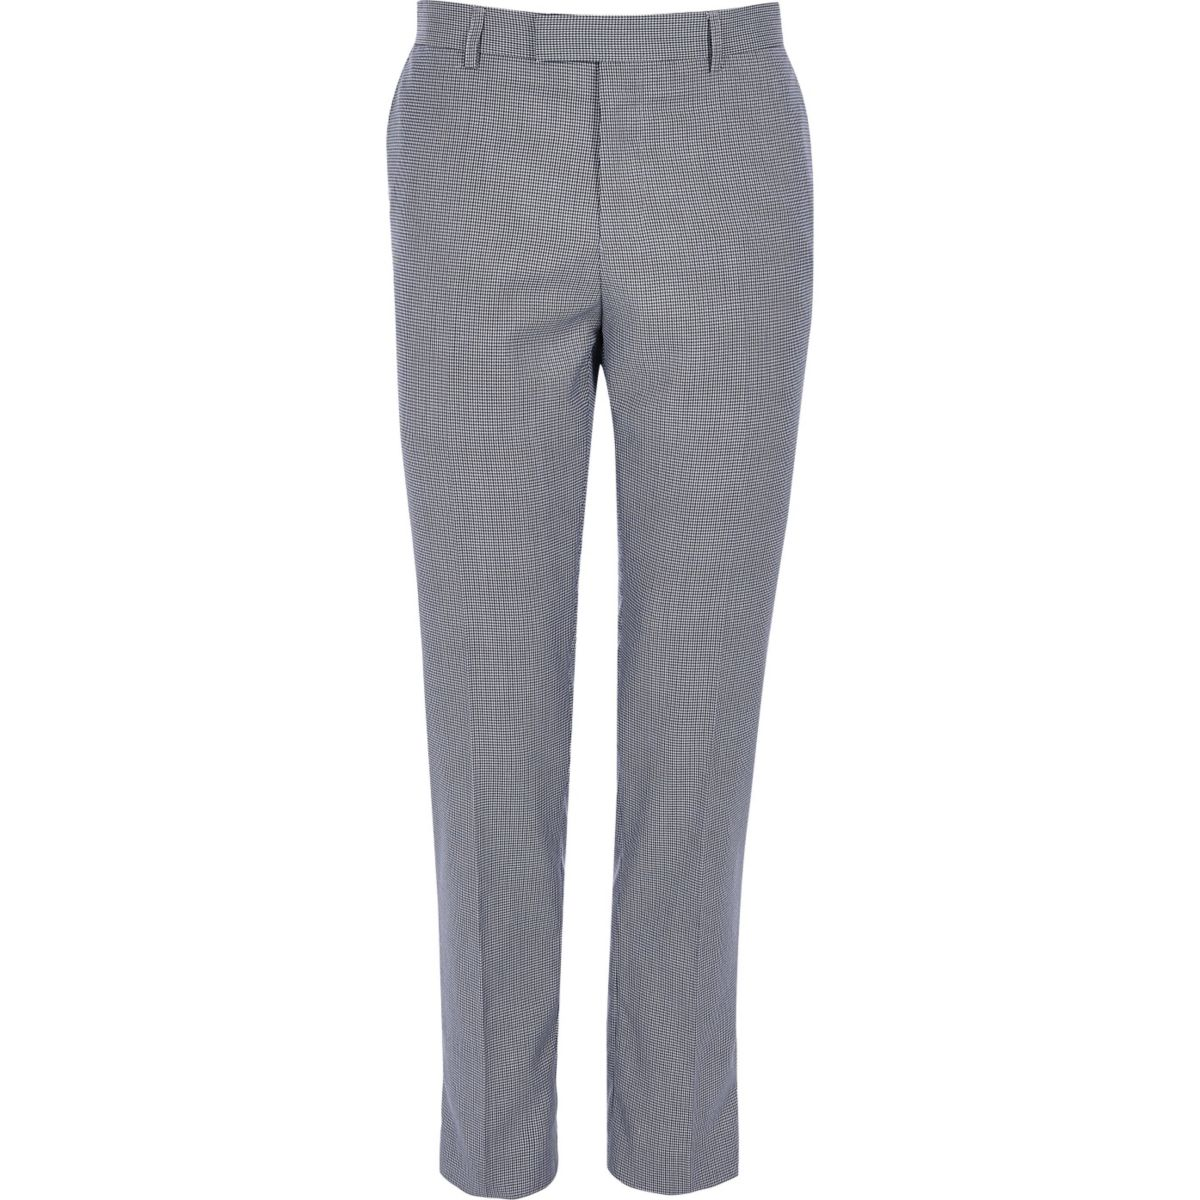 Navy pupstooth skinny fit suit pants